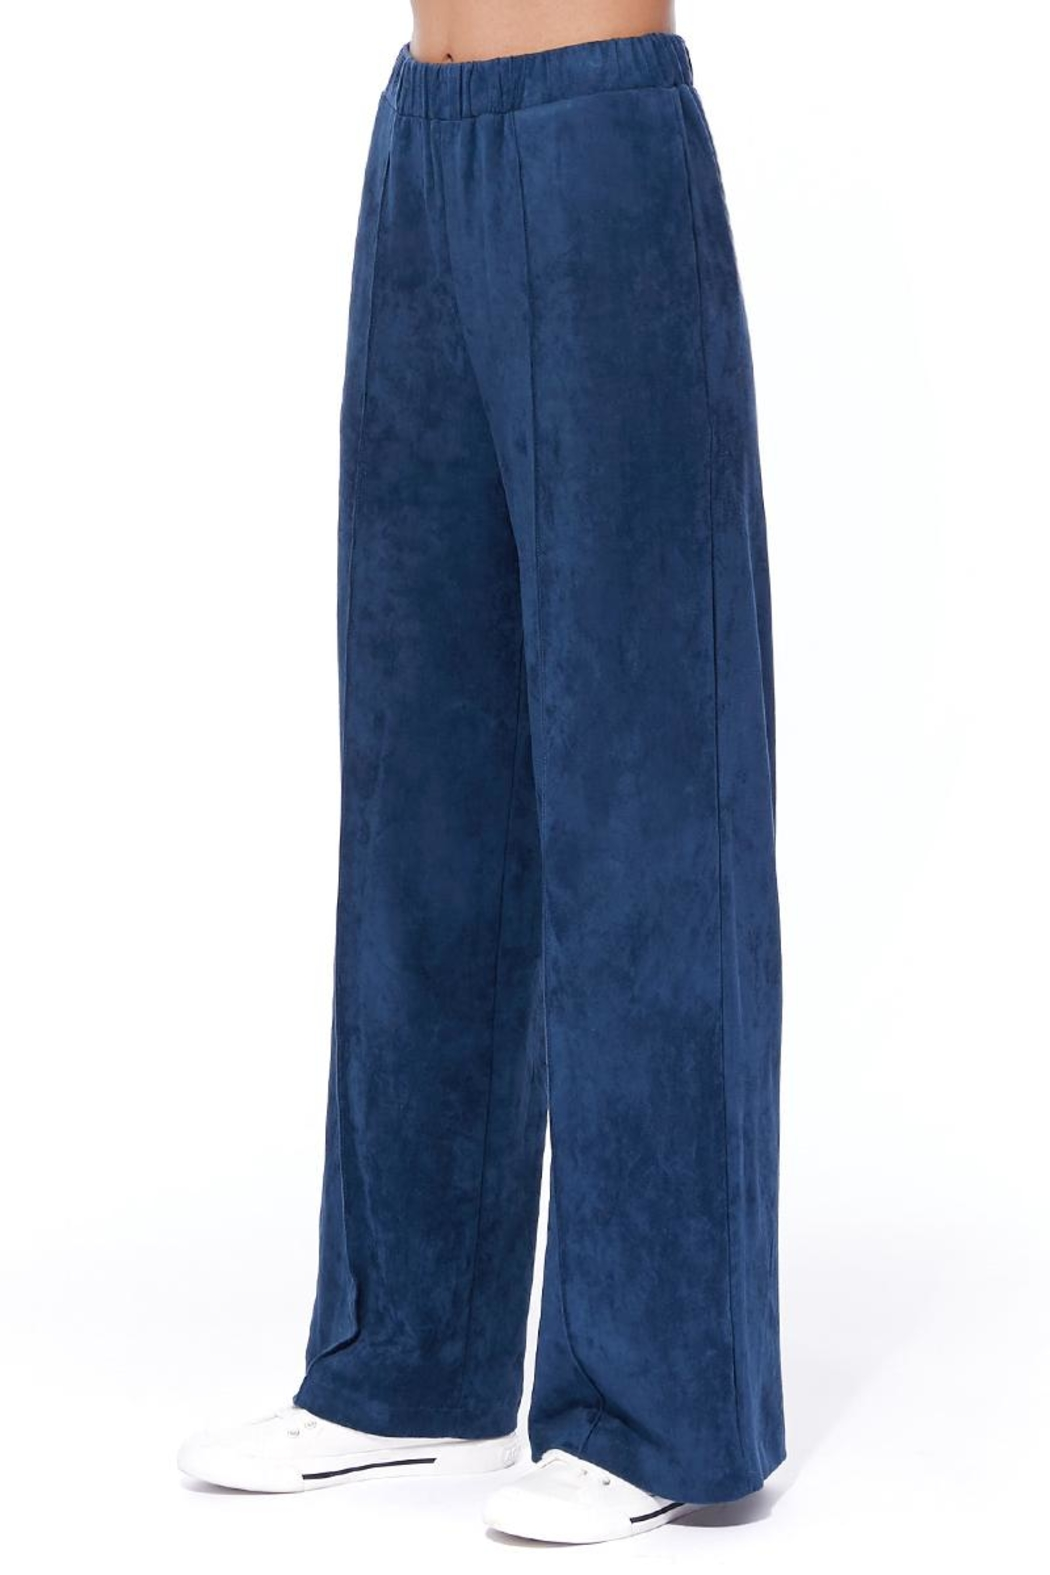 Aryeh Navy Faux Suede Pants - Side Cropped Image